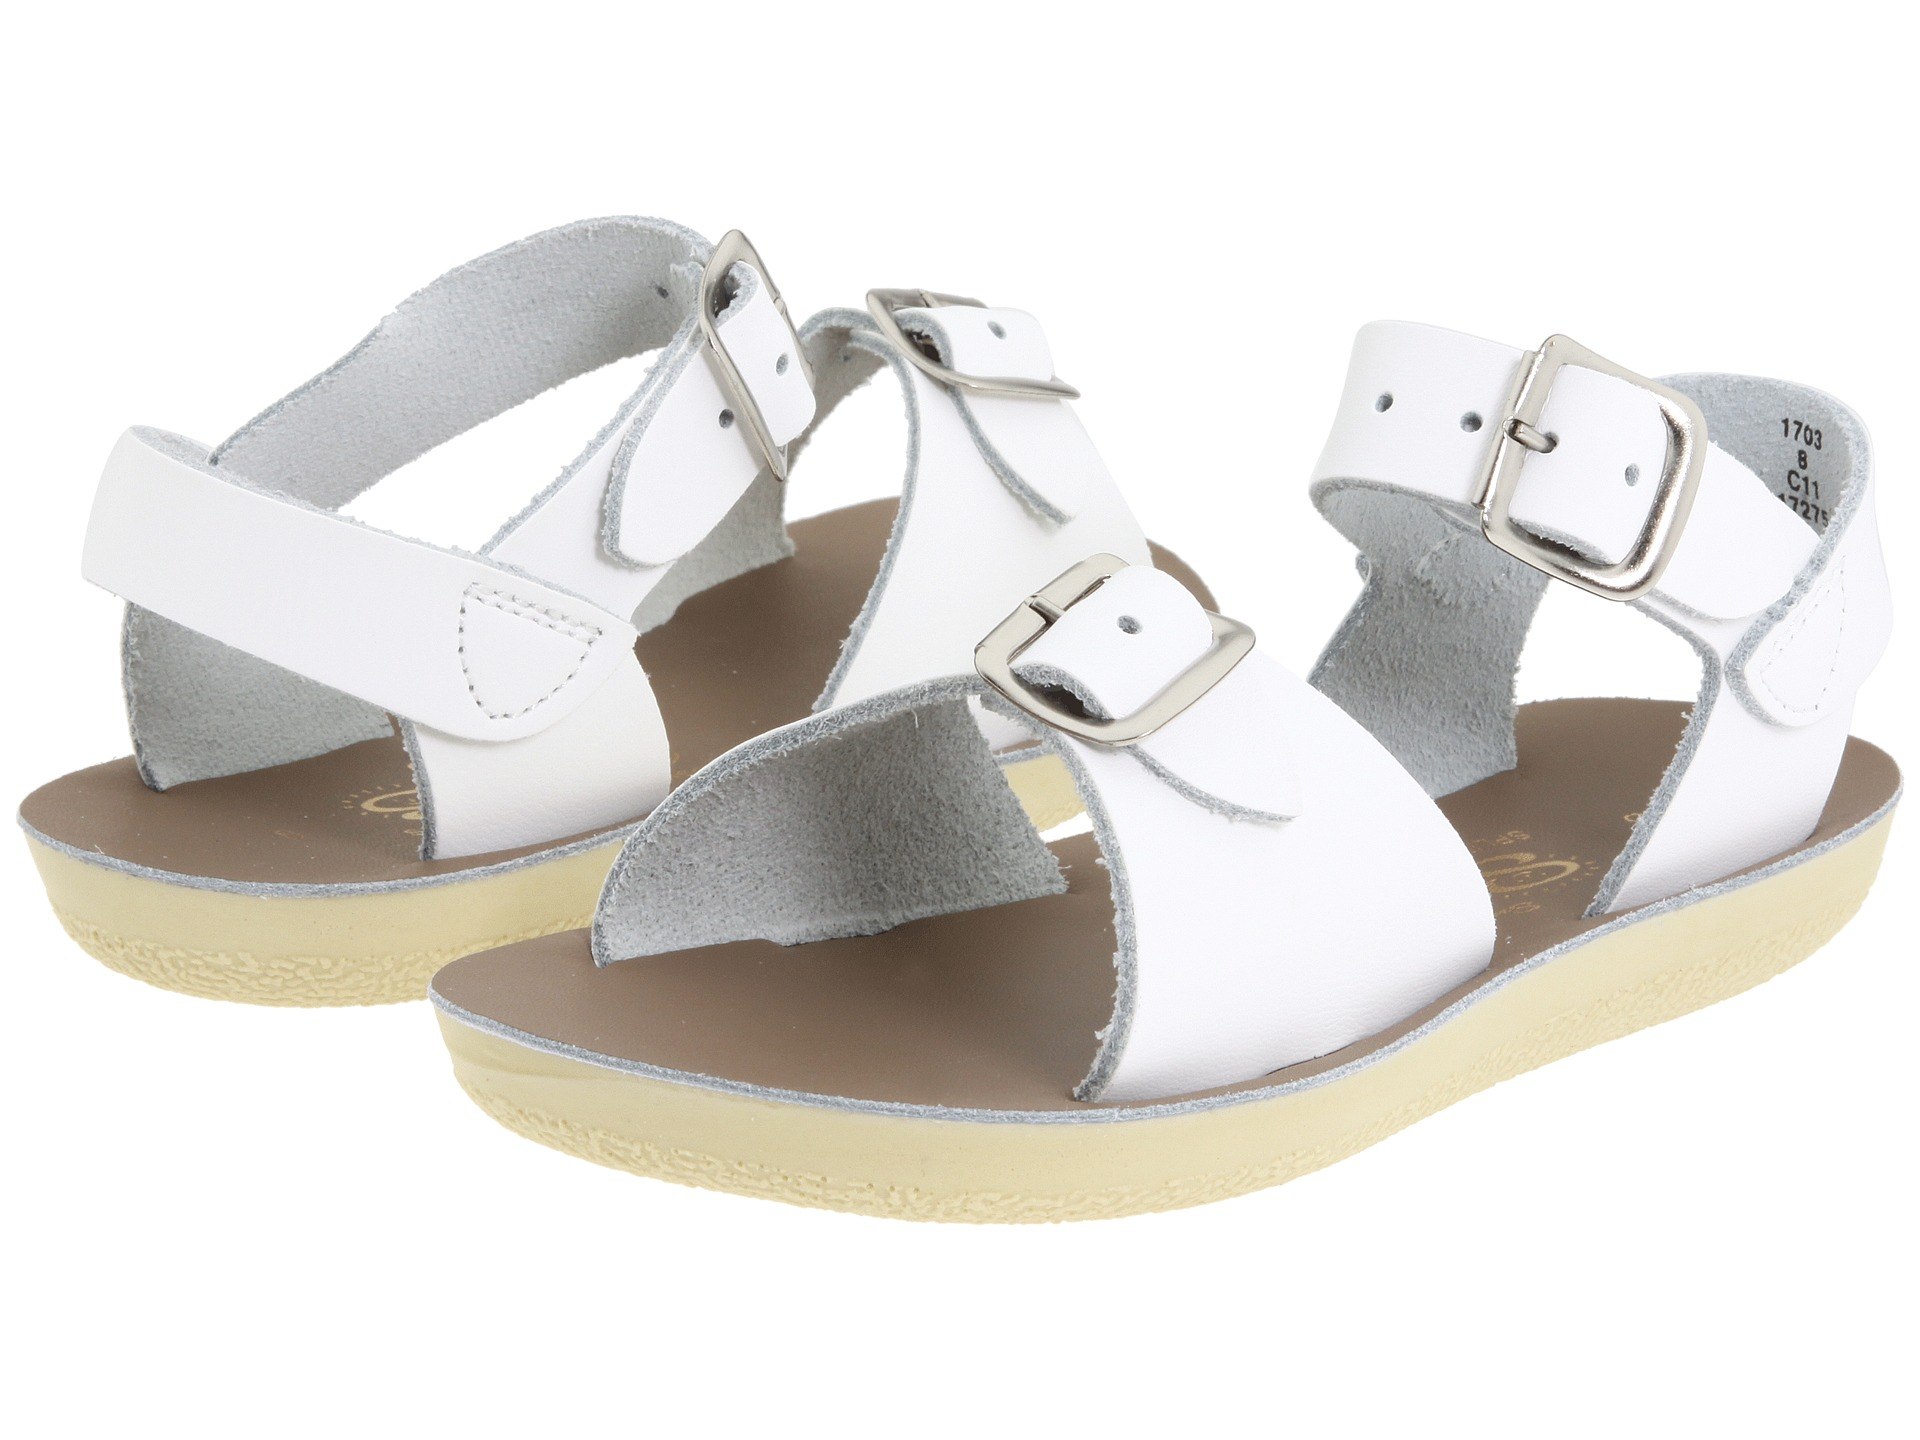 Salt Water Sandal By Hoy Shoes Sun San Surfer Toddler